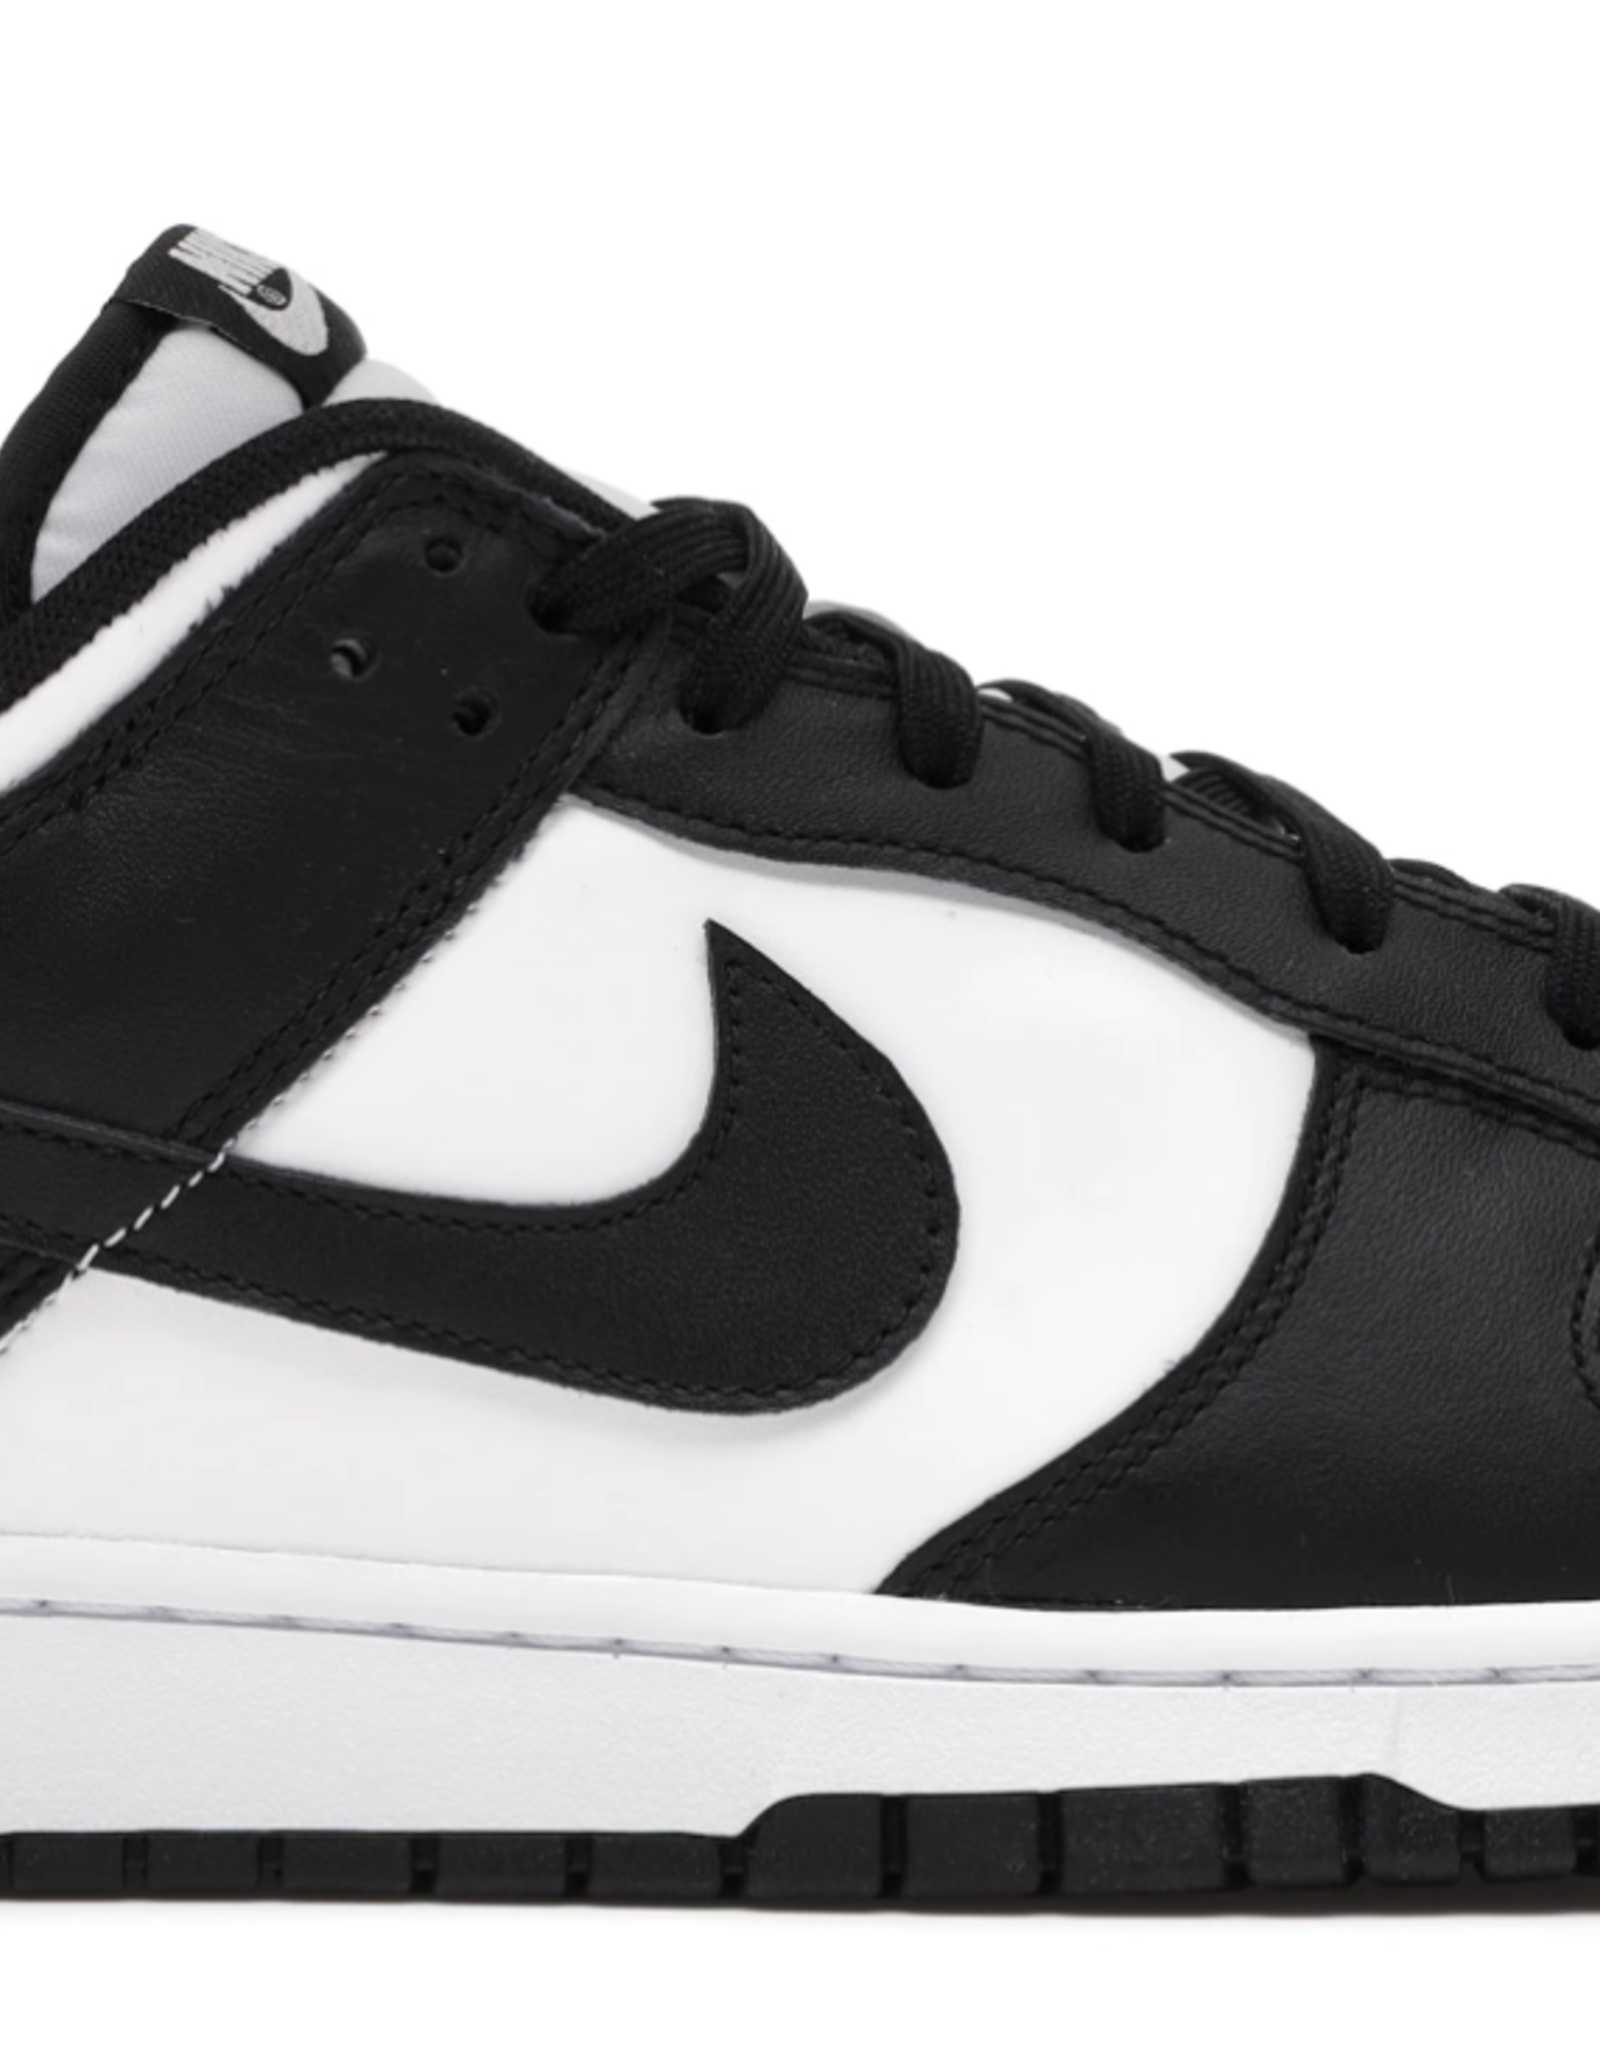 NIKE Nike Dunk Low Retro White Black (2021)